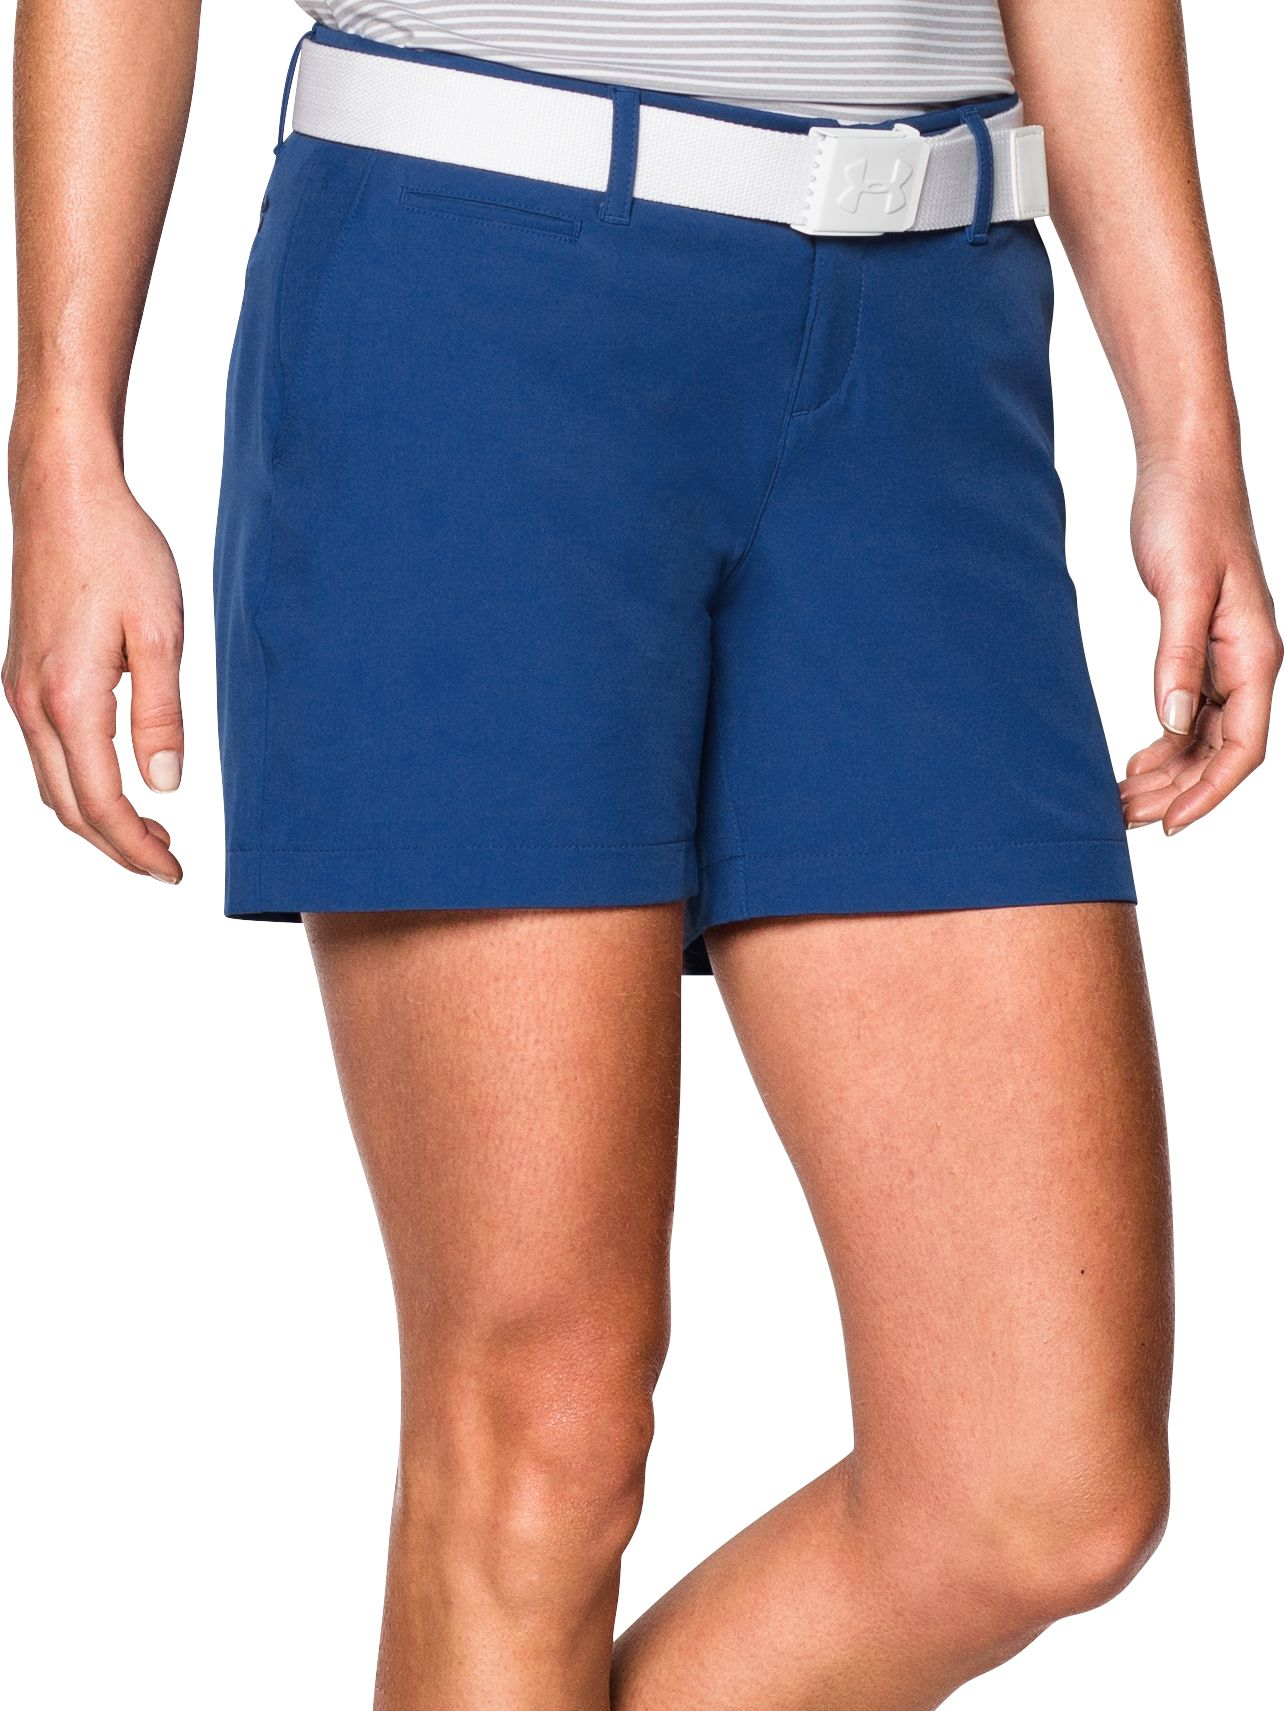 Women's Golf Shorts | DICK'S Sporting Goods